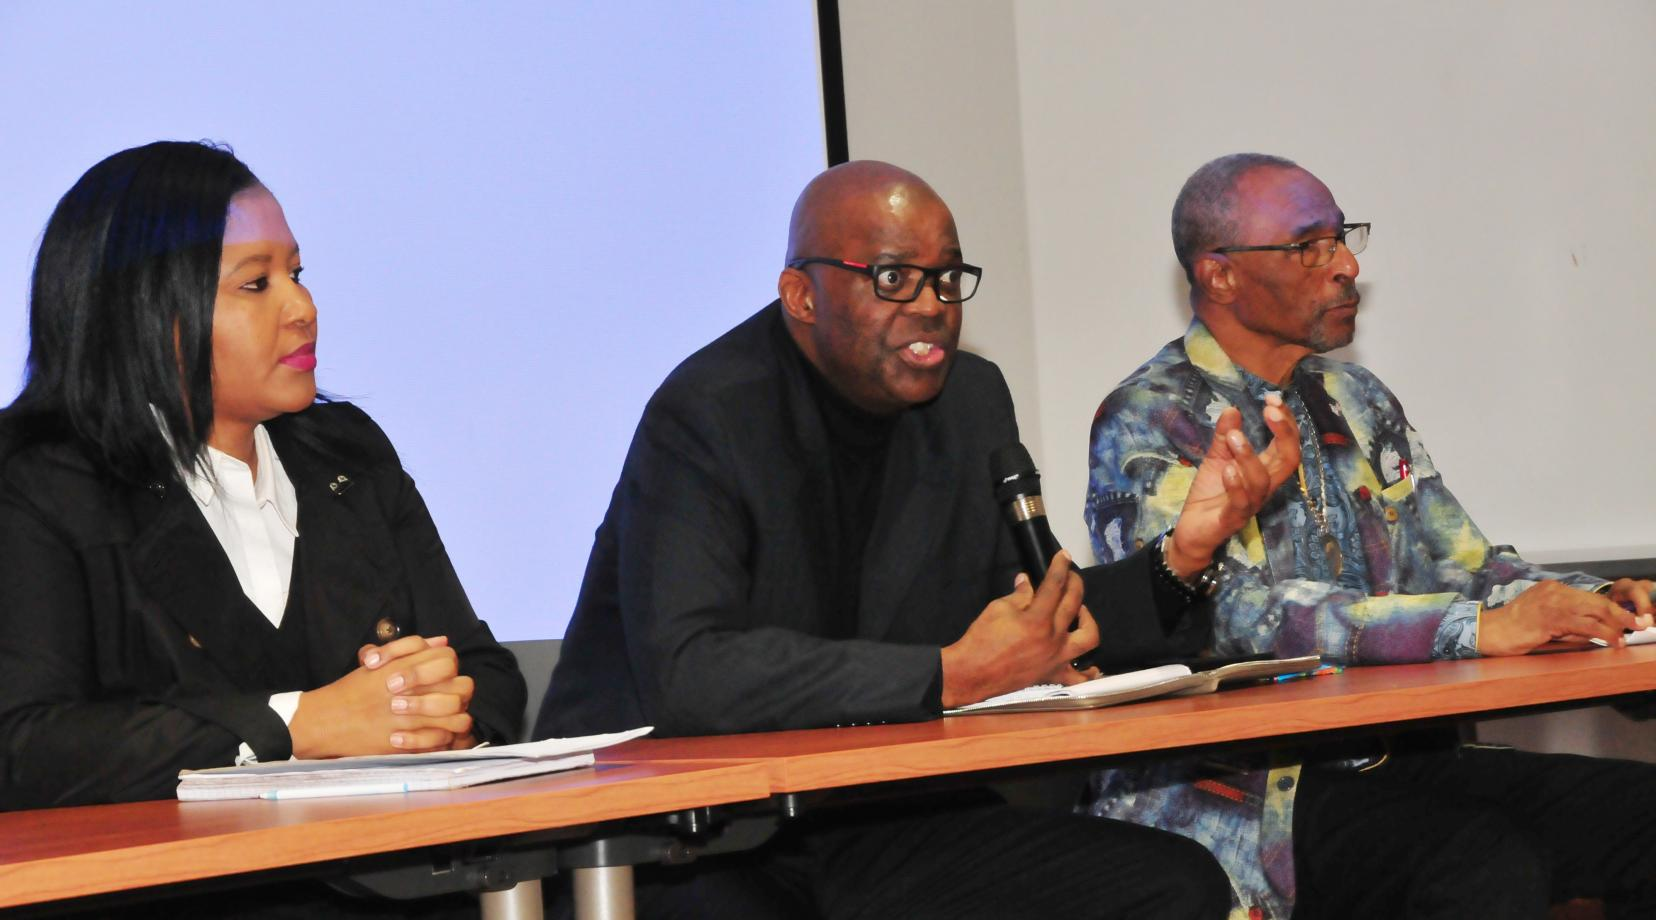 <p>Dr. Eddy Maloka (center), CEO of the African Peer Review Mechanism, fields a question from the audience of DSU students. He is flanked by Tumi Dlamini (l), Dr. Maloka's advisor, and C. Gregory Turner, of Kool-Baker Global, a firm that invests in businesses in Africa.</p>